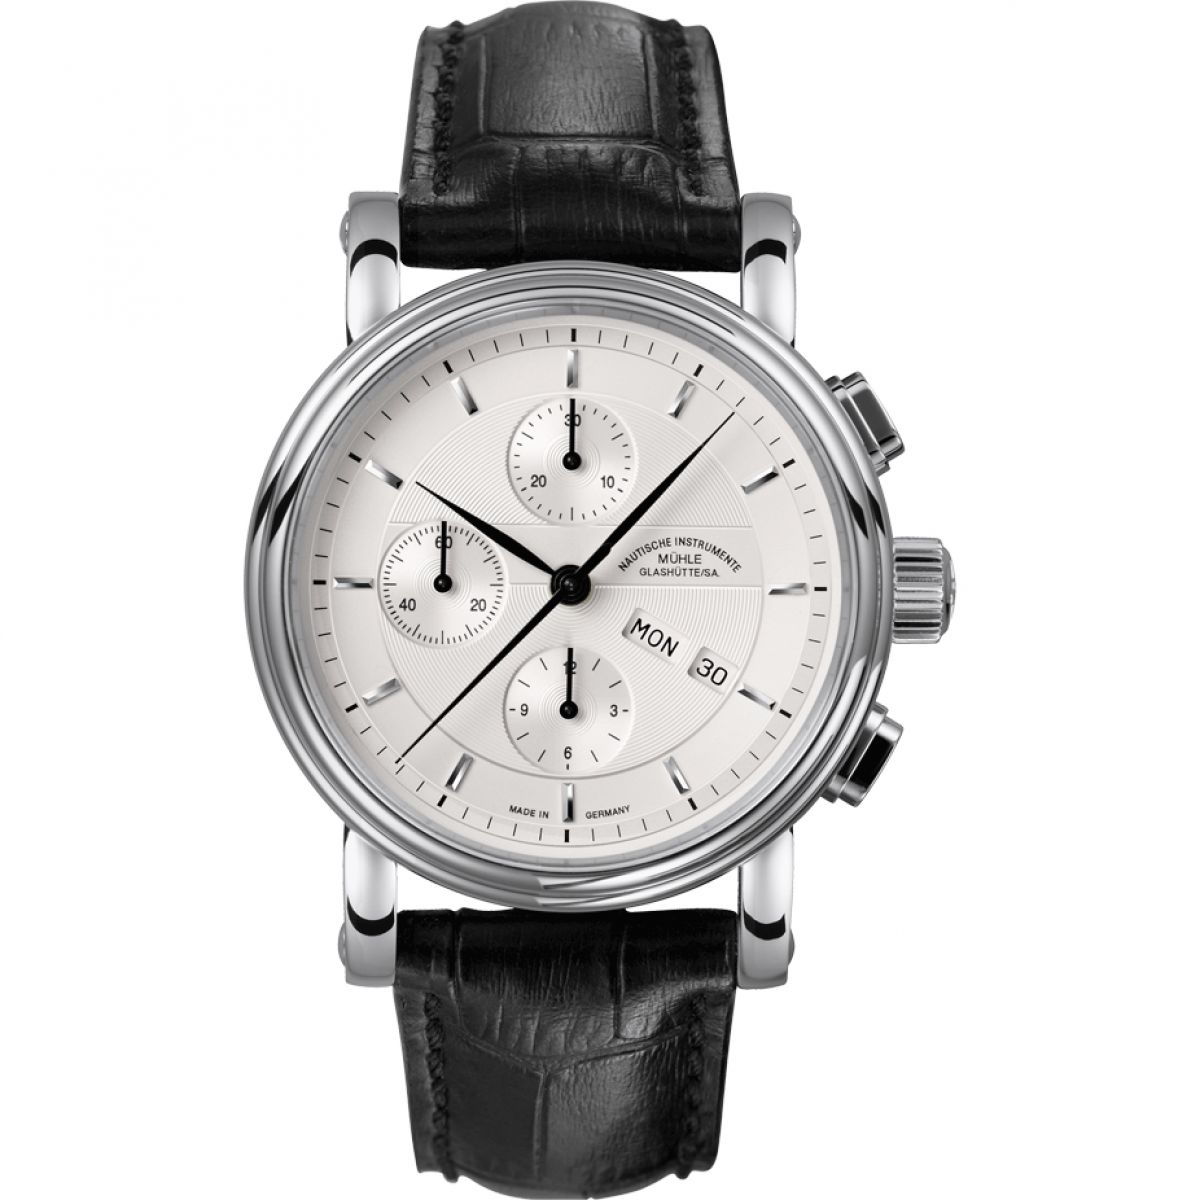 Gents muhle glashutte teutonia ii chronograph watch m1 30 95 lb for Muhle watches